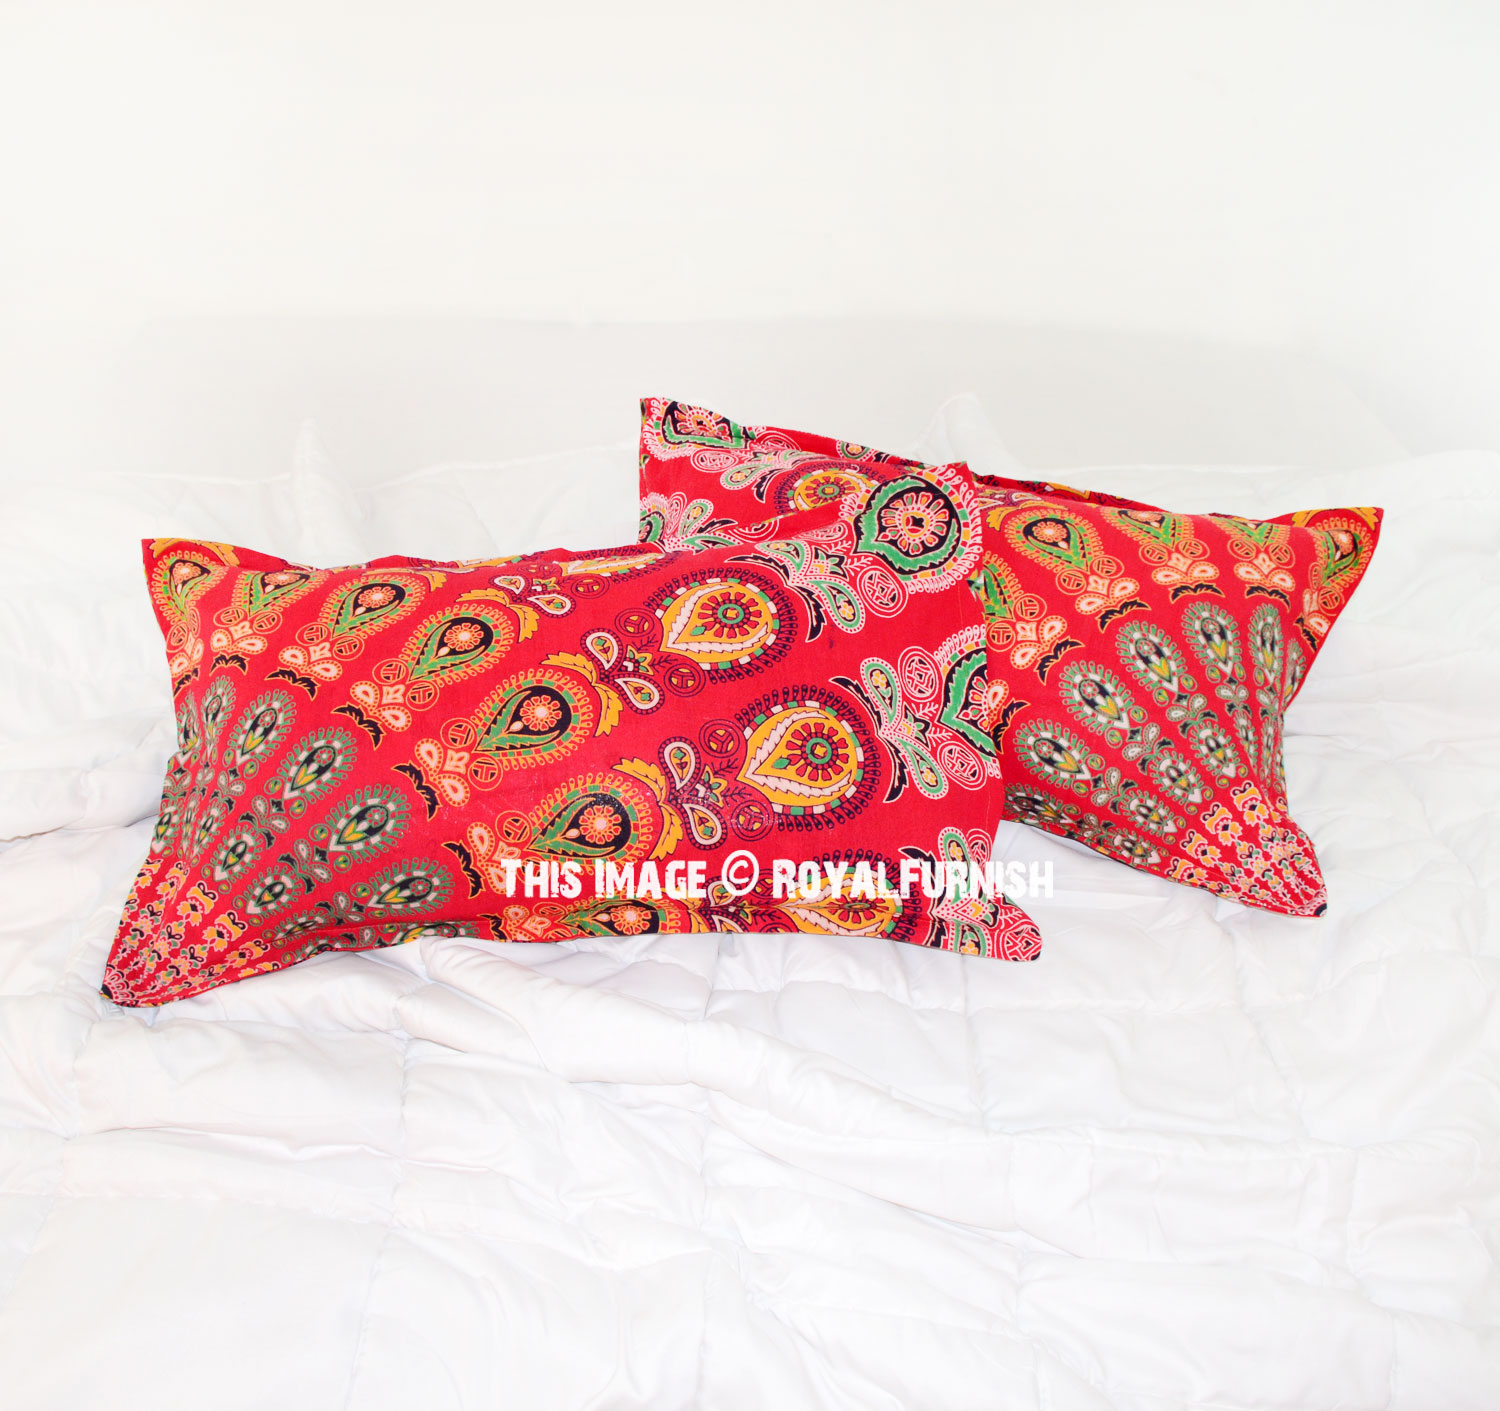 Red Throw Pillows For Bed : Red Boho Chic Peacock Mandala Bed Pillow Cases Set of Two - RoyalFurnish.com